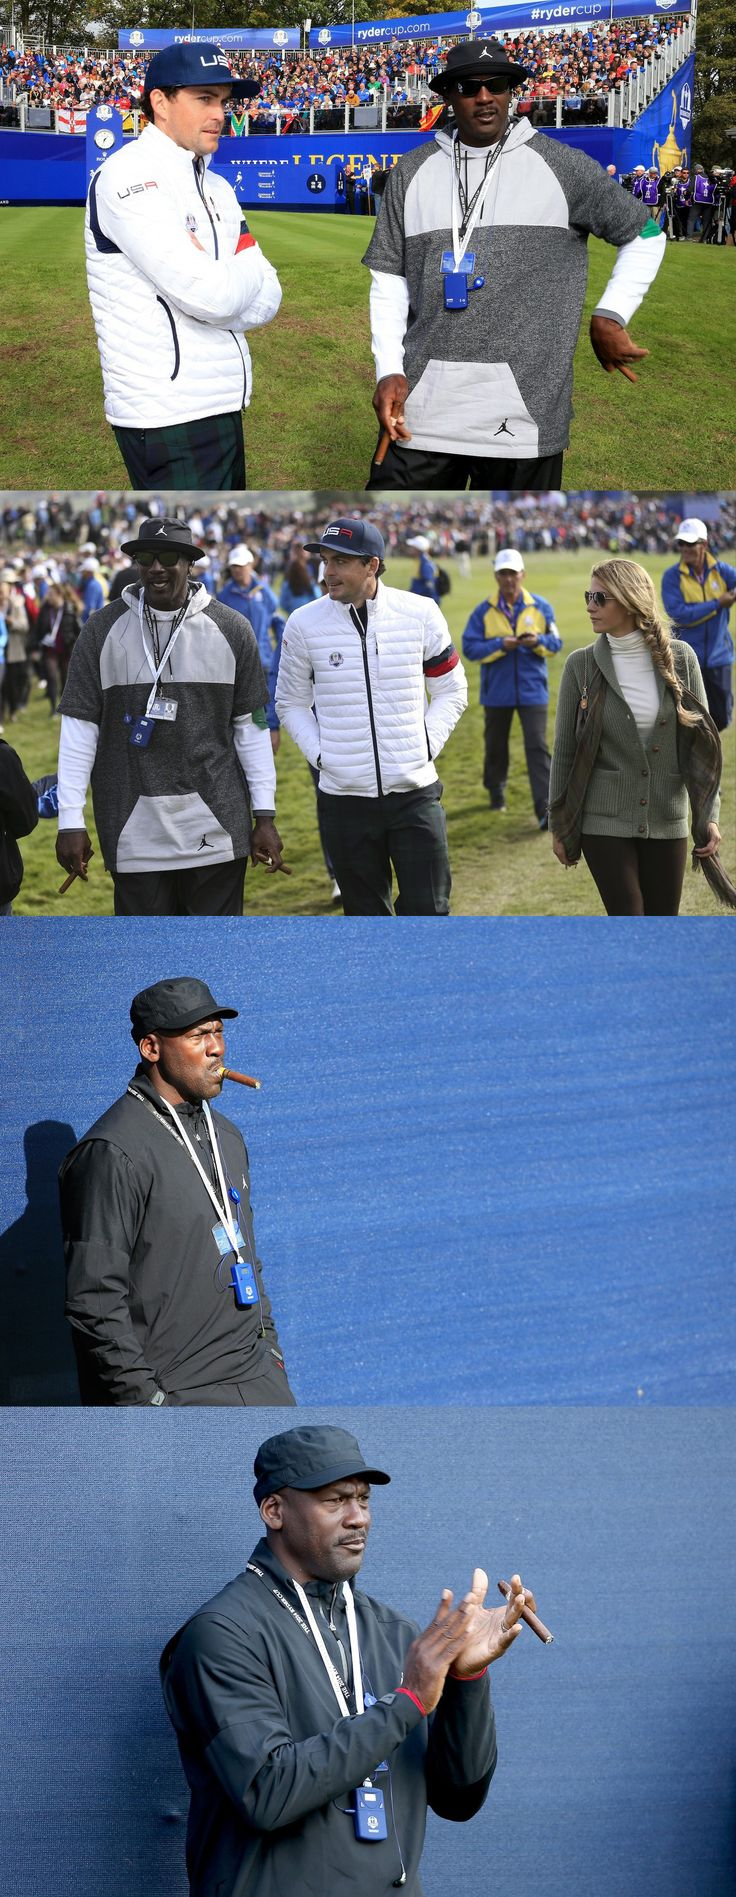 Michael Jordan at the Ryder Cup in Scotland.